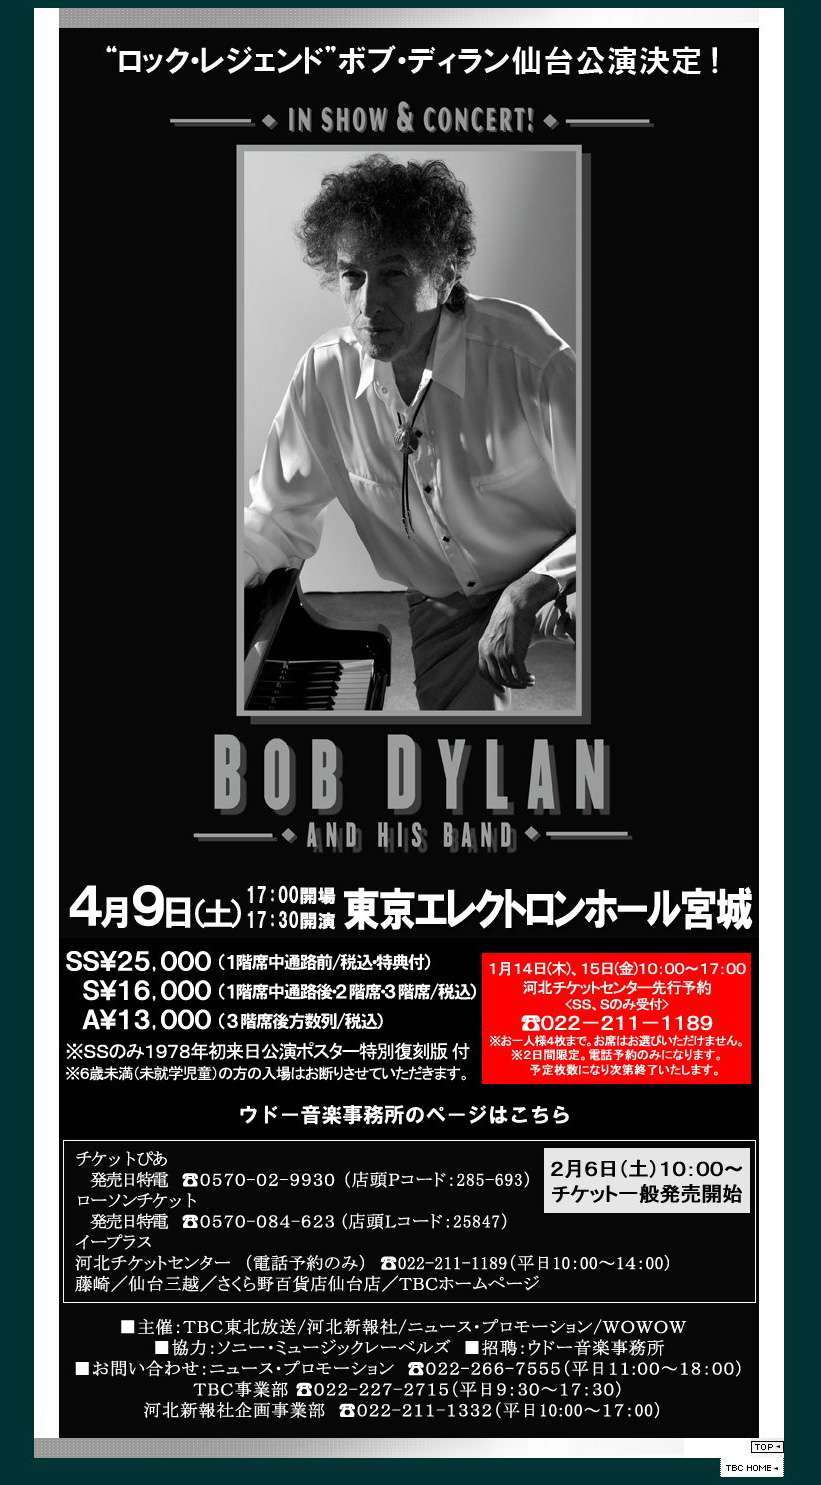 http://www.tbc-sendai.co.jp/tc_event/special/bobdylan2016/index.html